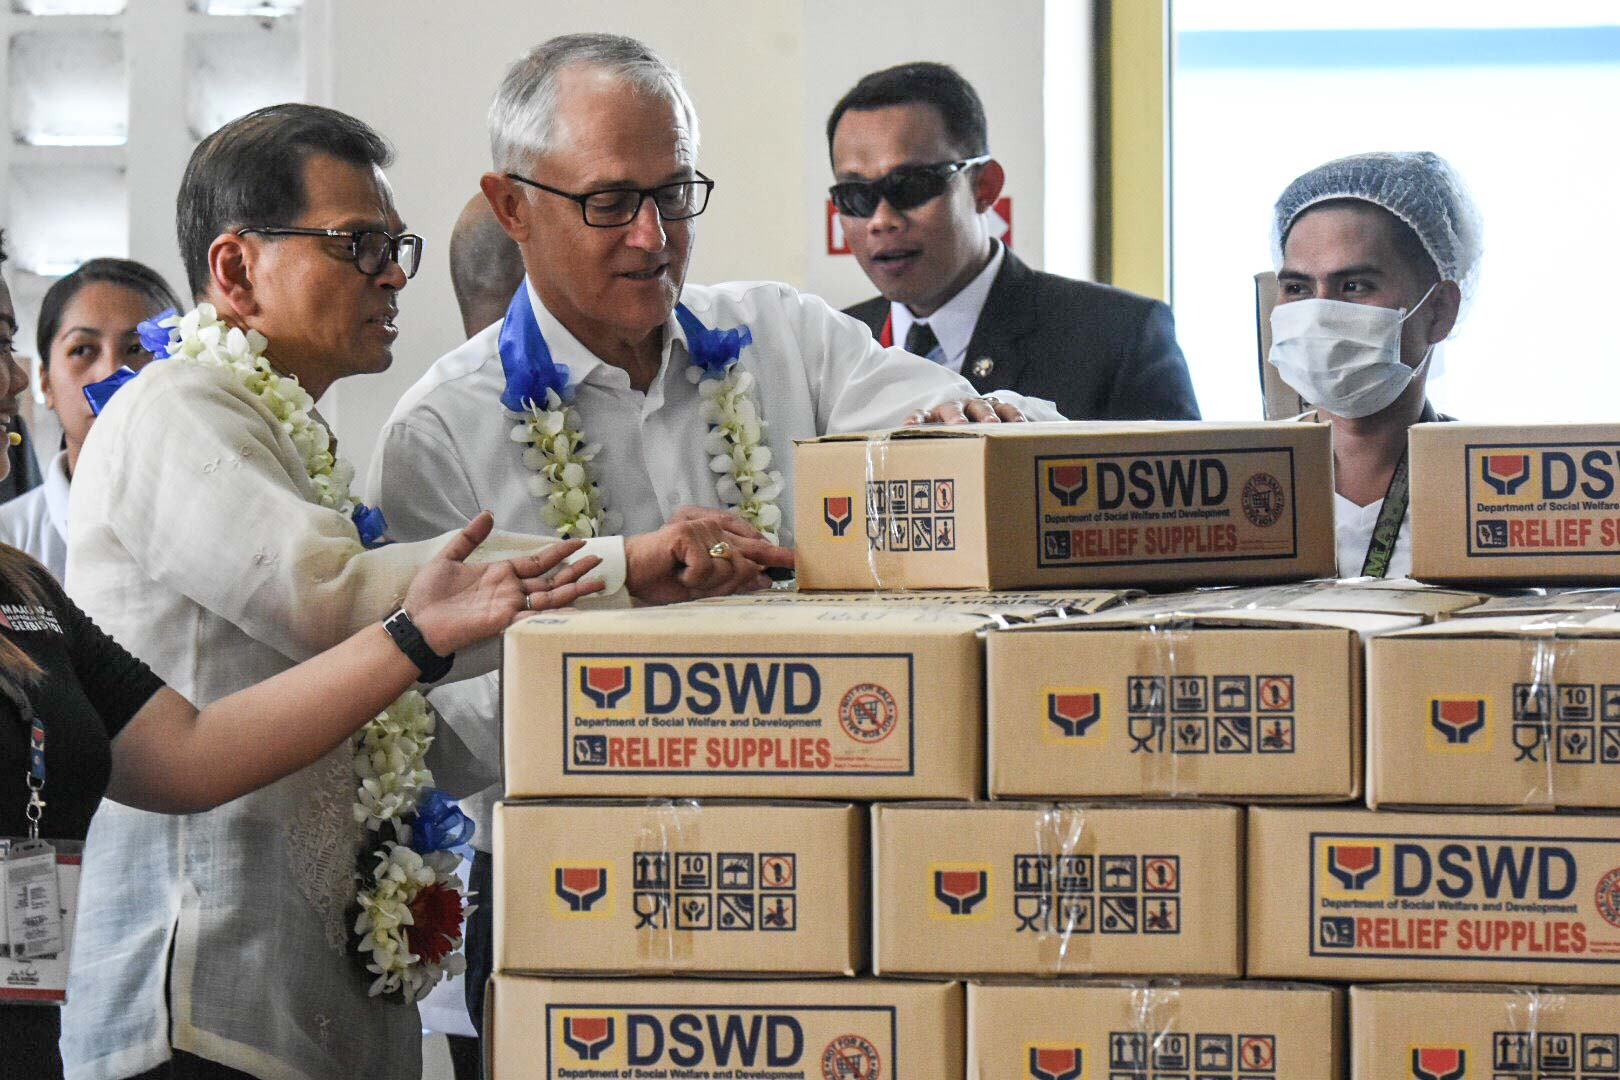 DSWD VISIT. Australian Prime Minister Malcolm Turnbull visits the Department of Social Welfare and Development National Resource Operations Center on November 13, 2017. Photo by Angie de Silva/Rappler